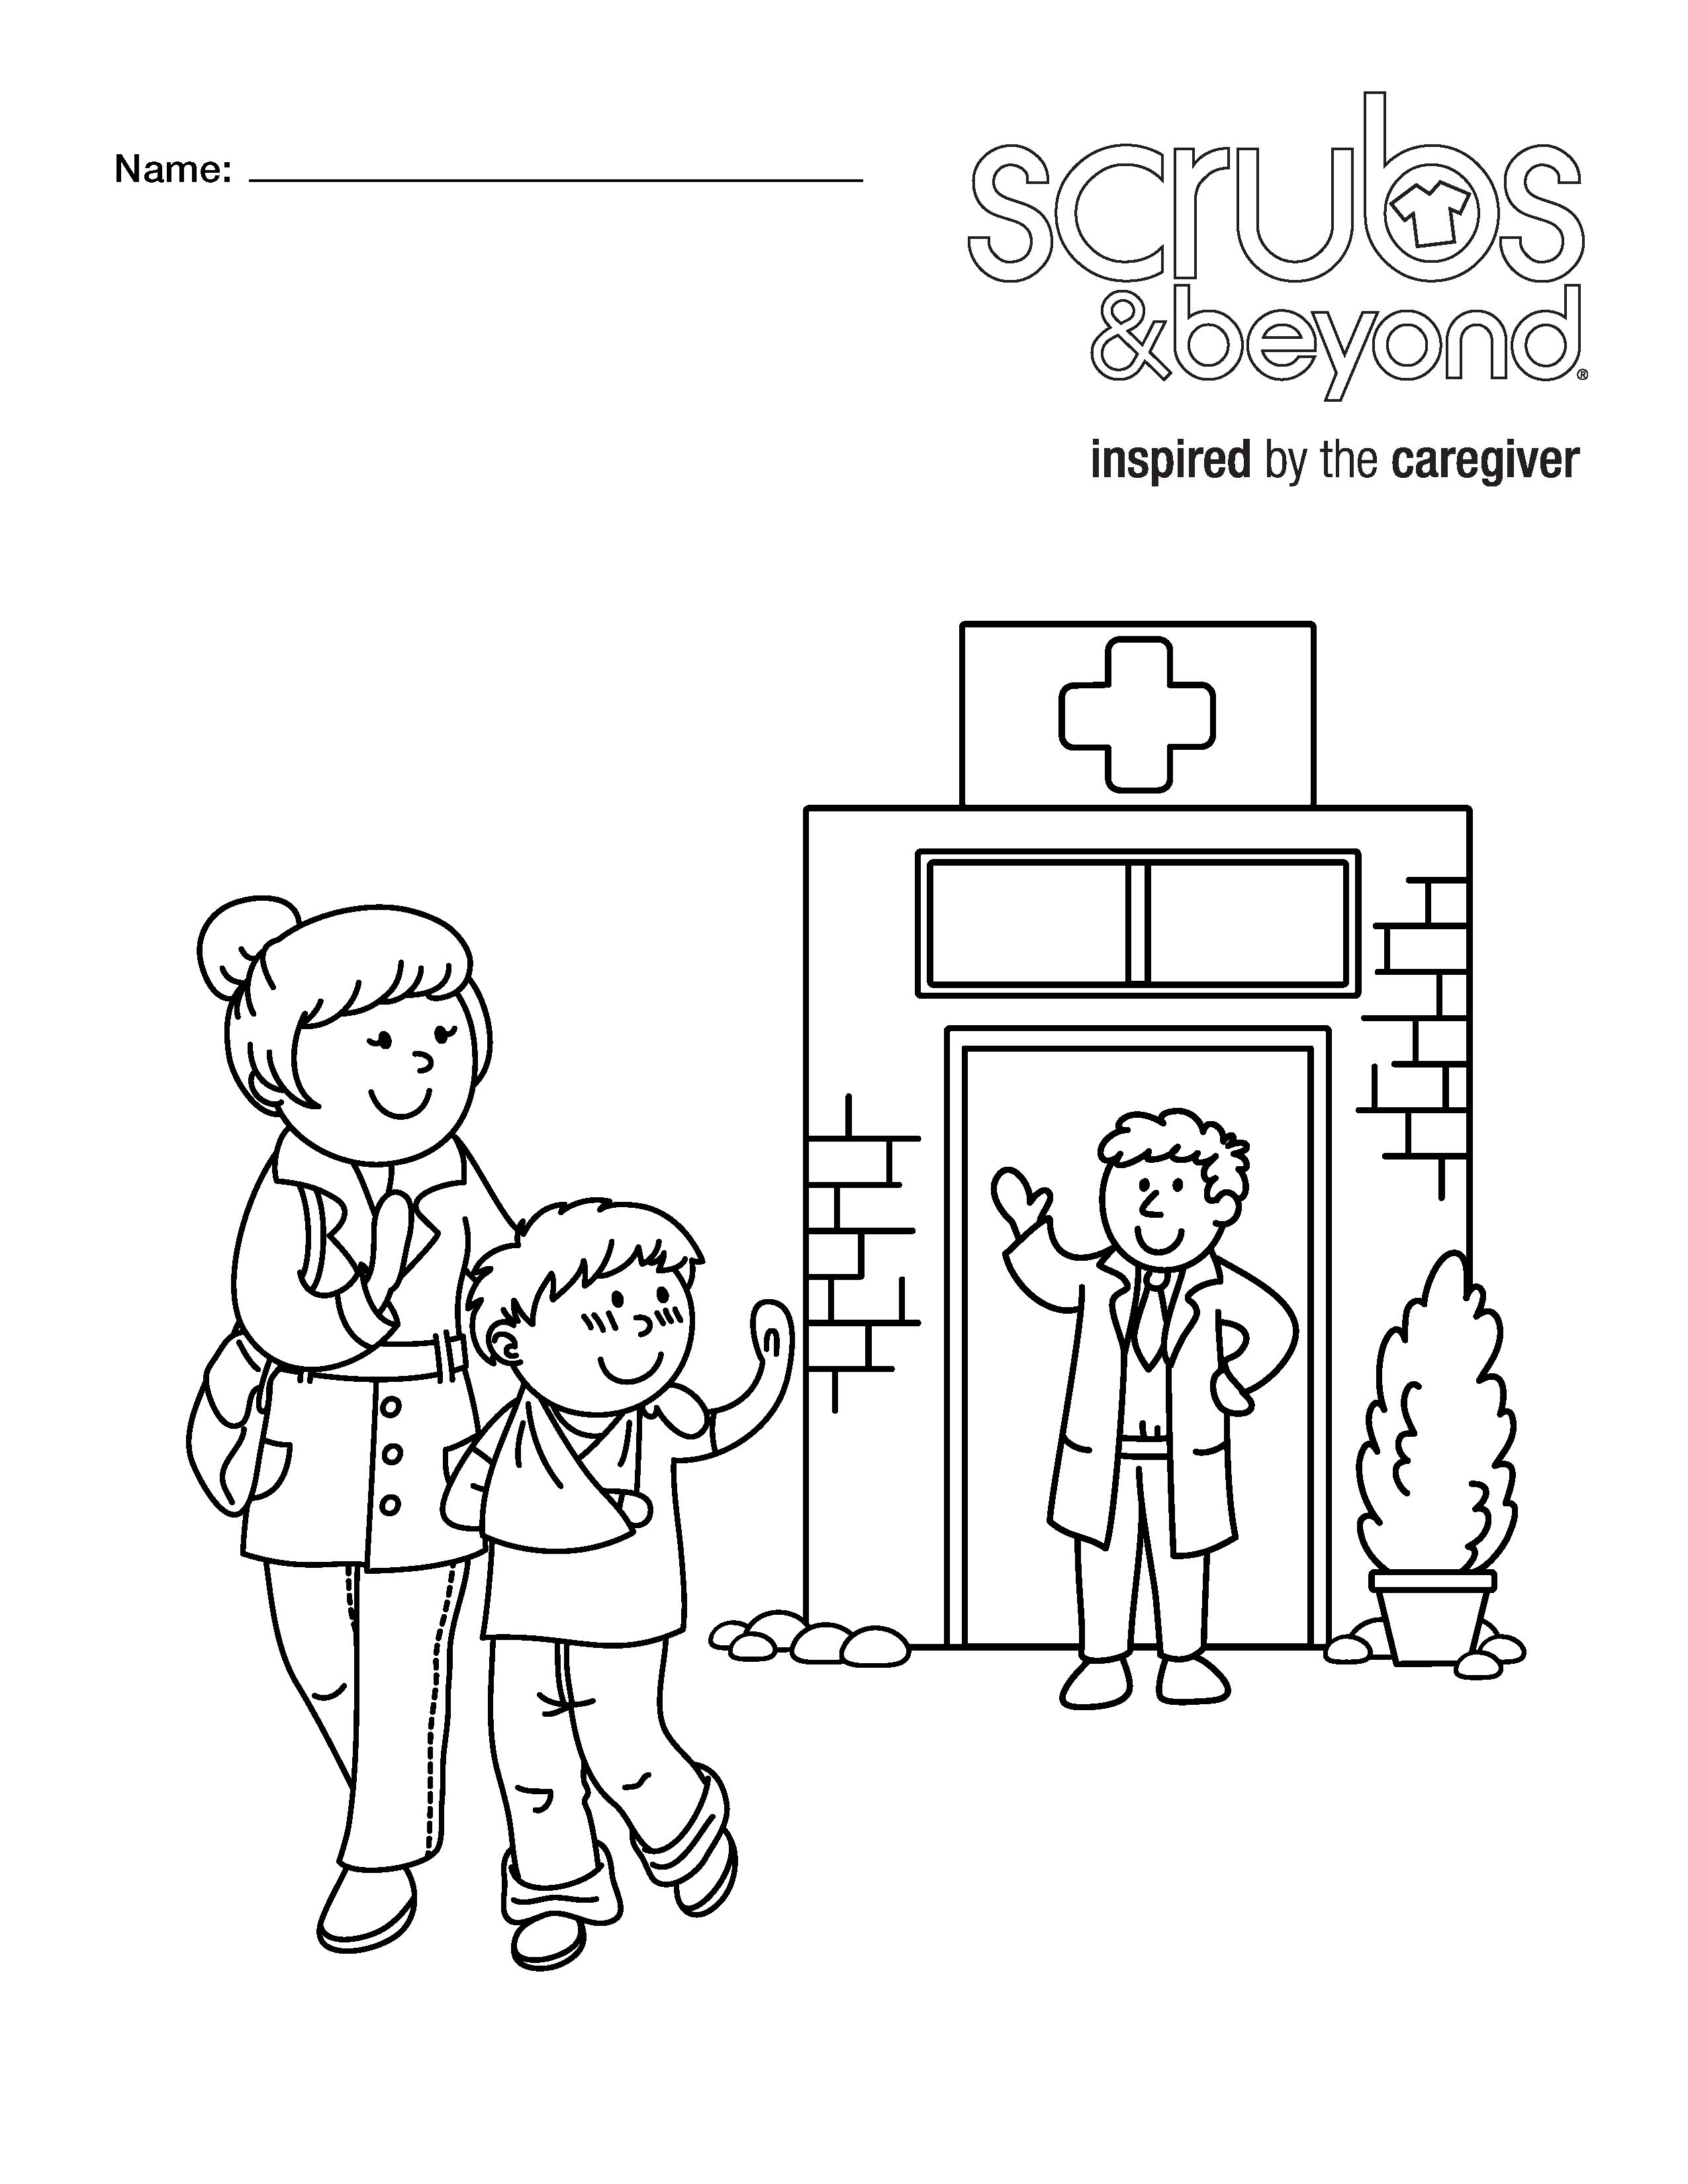 Delivered Doctor Tools Coloring Page unicorn coloring pages boys ...